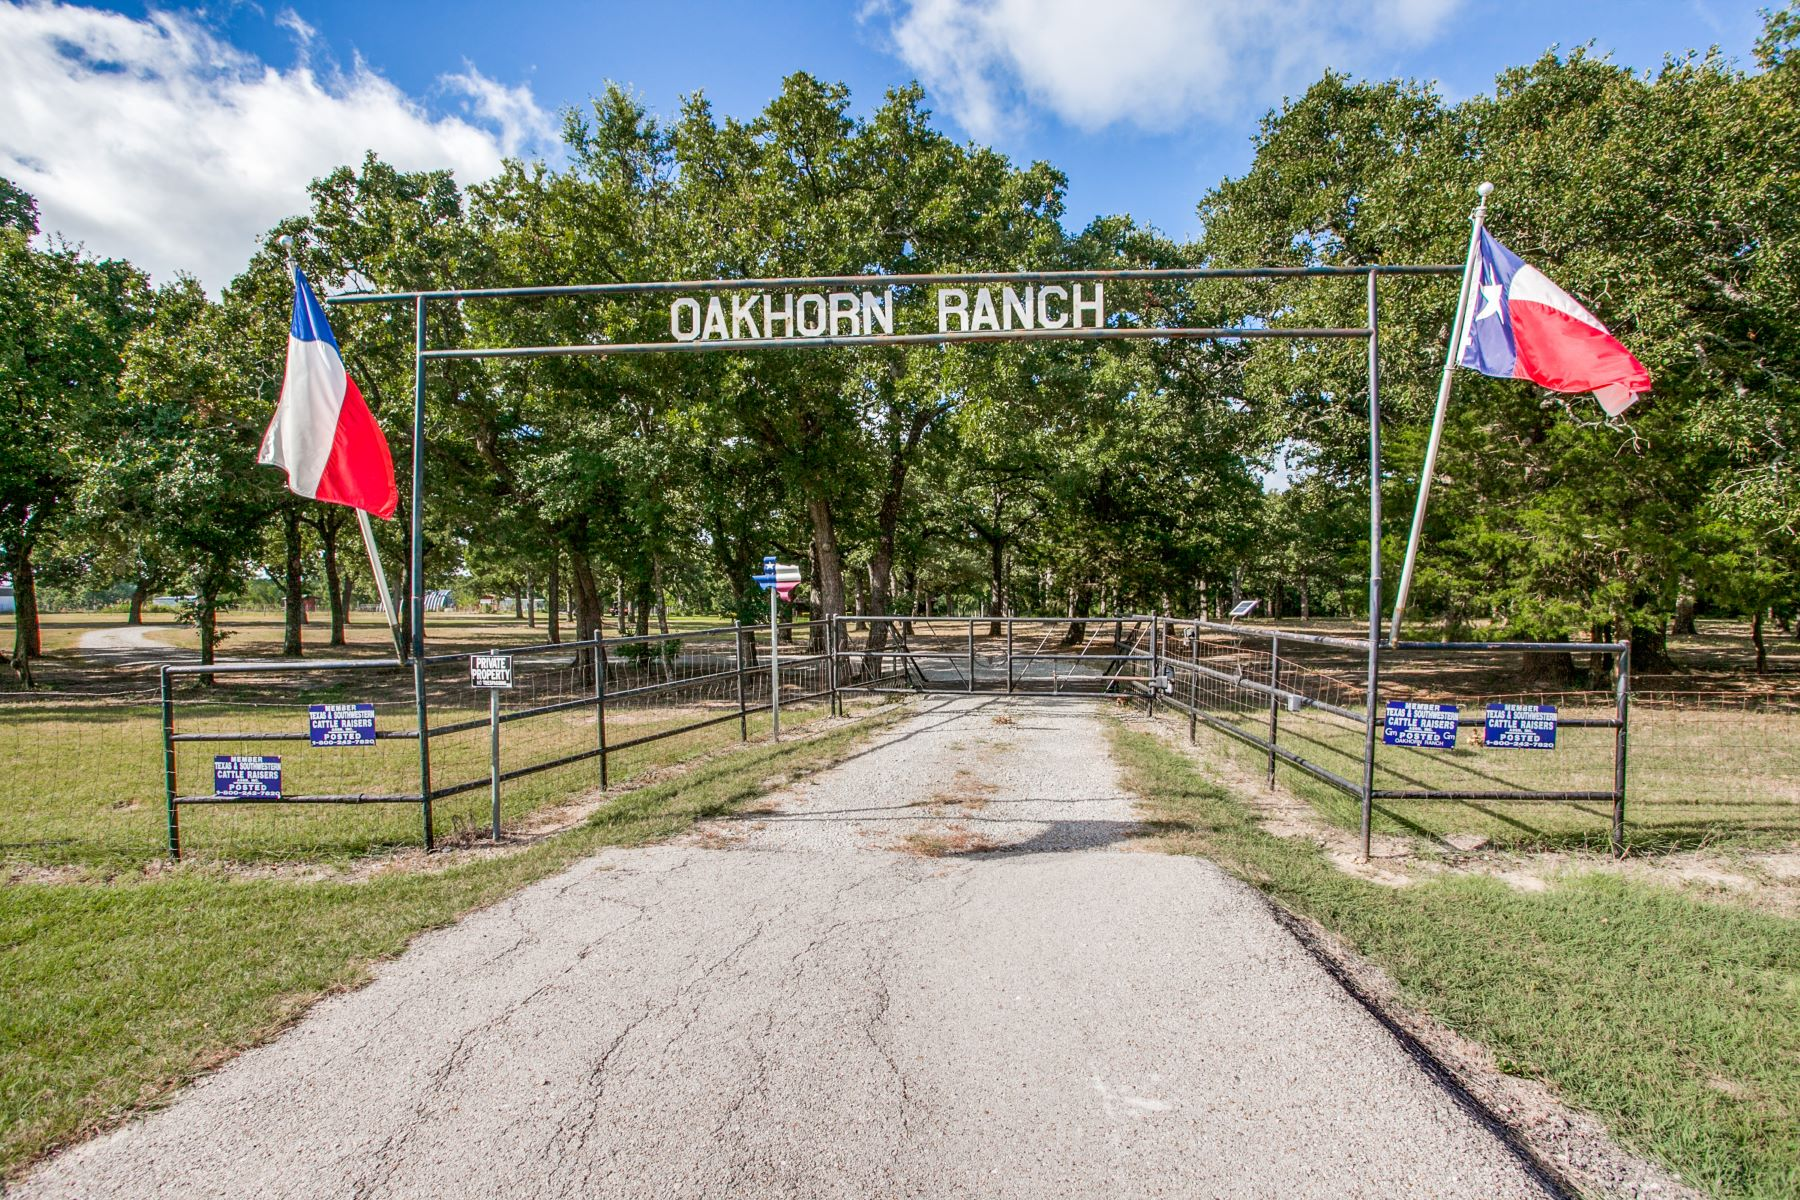 Farm / Ranch / Plantation for Active at Oak Horn Ranch 58 Acres 10035 W. FM 744 Barry, Texas 75102 United States